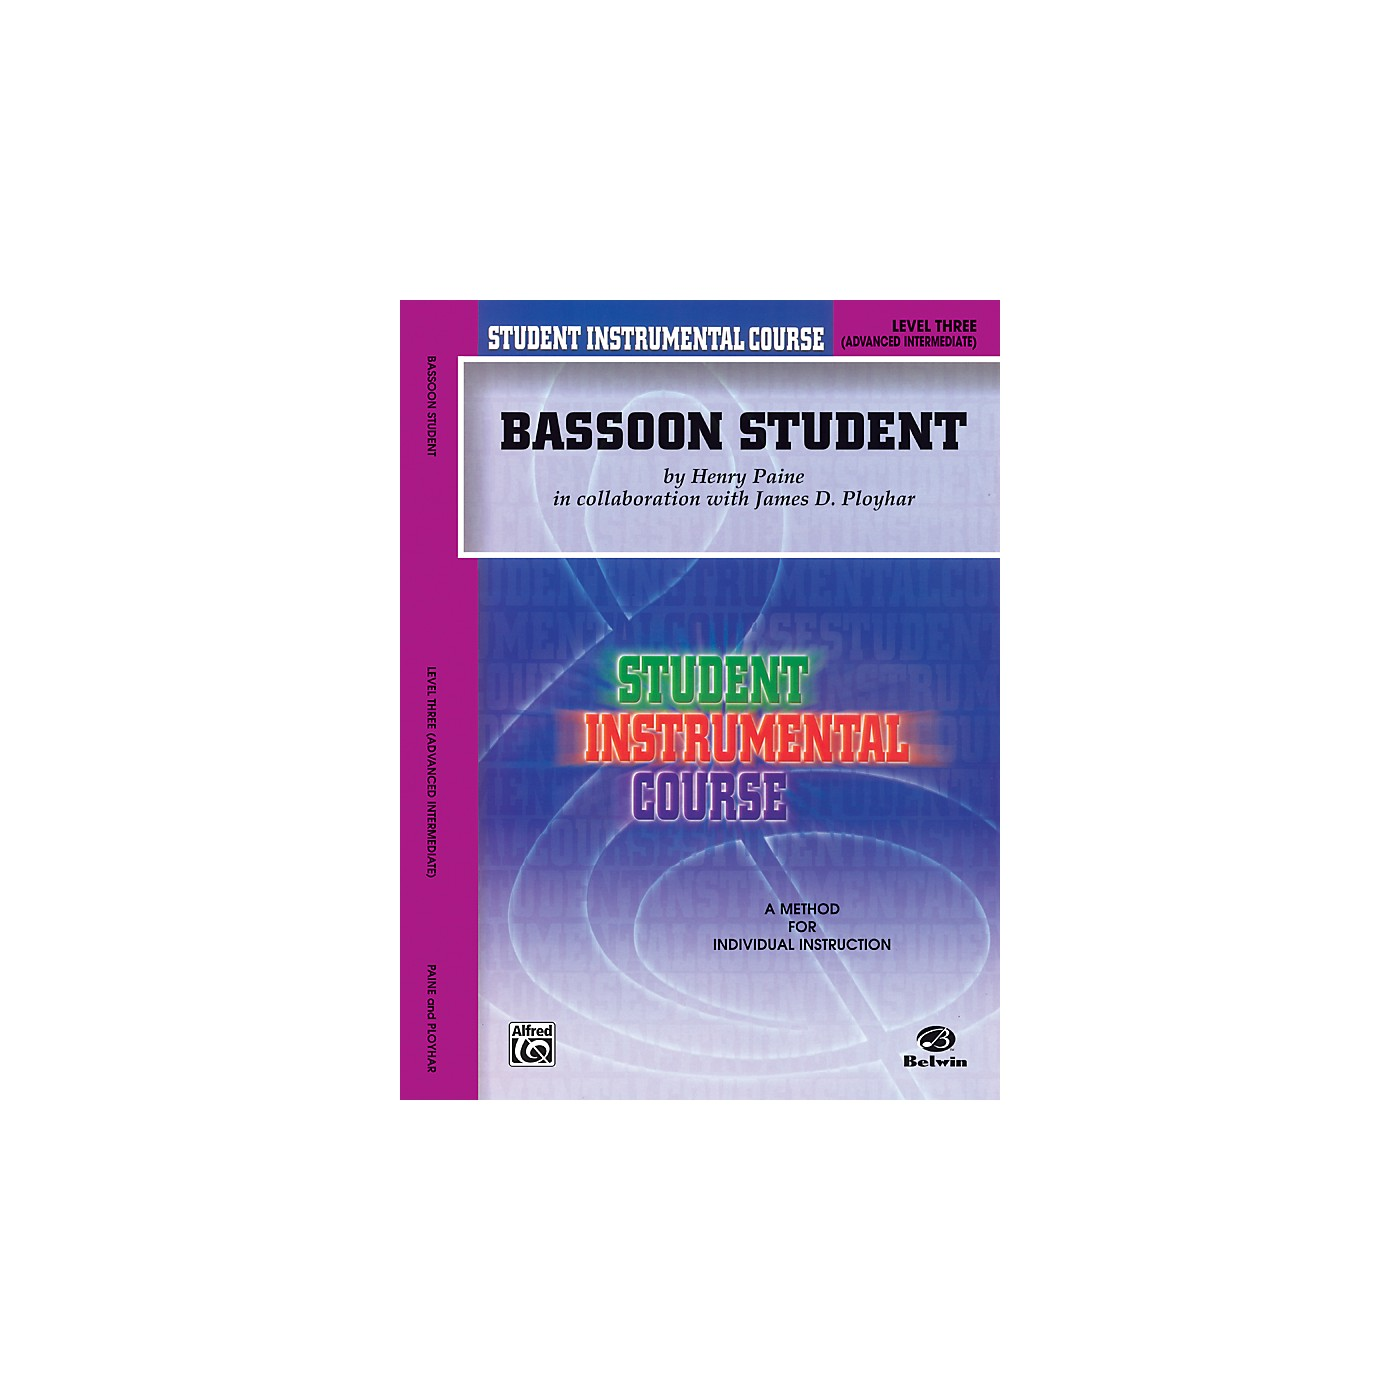 Alfred Student Instrumental Course Bassoon Student Level 3 Book thumbnail